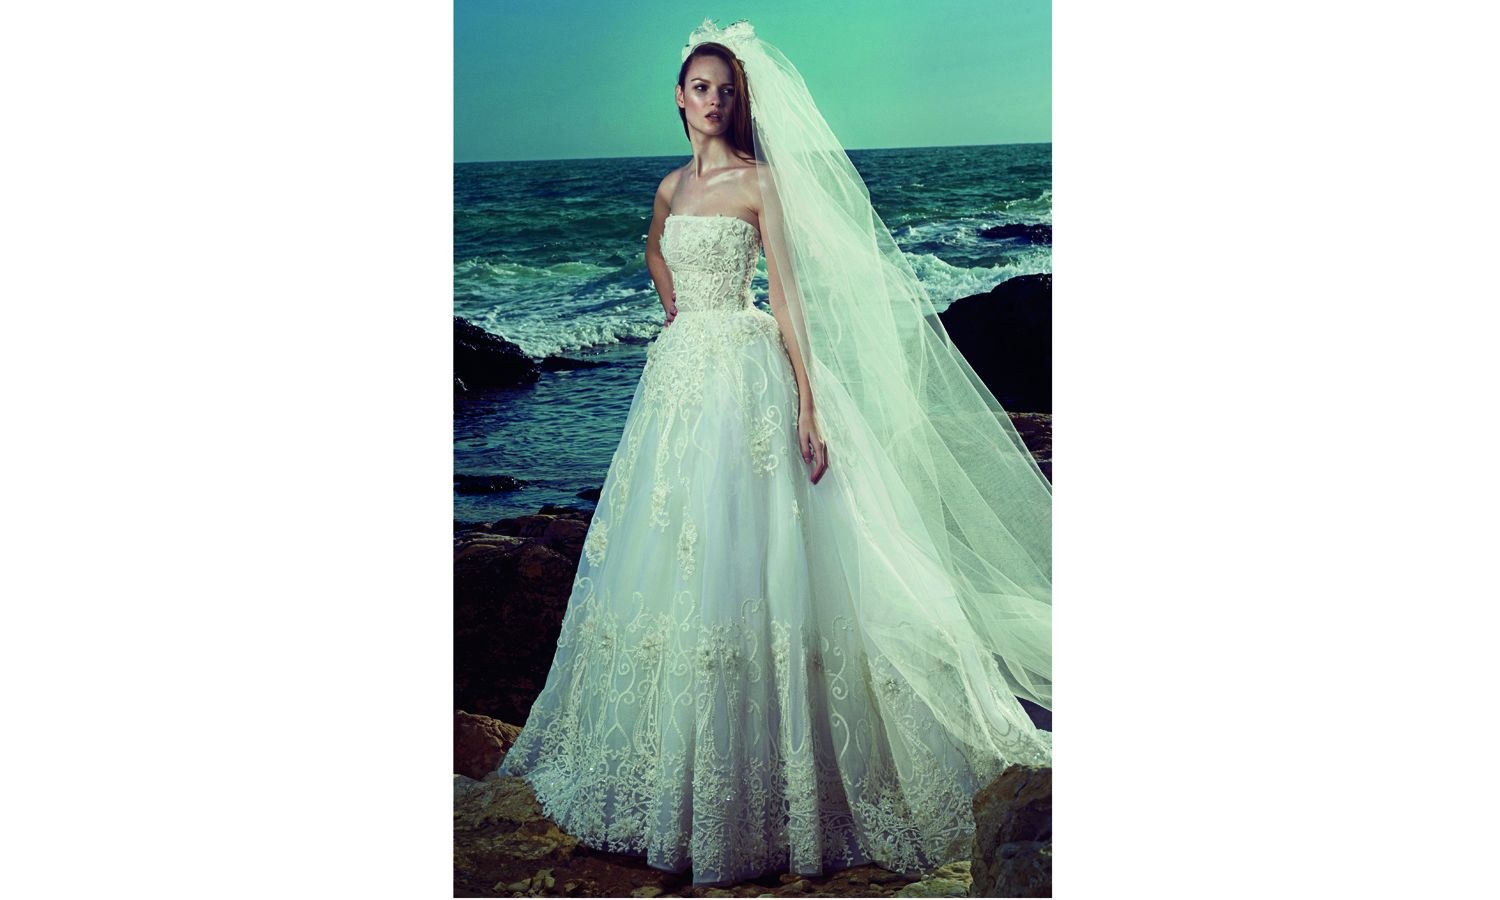 6 Stunning Wedding Gowns from Zuhair Murad